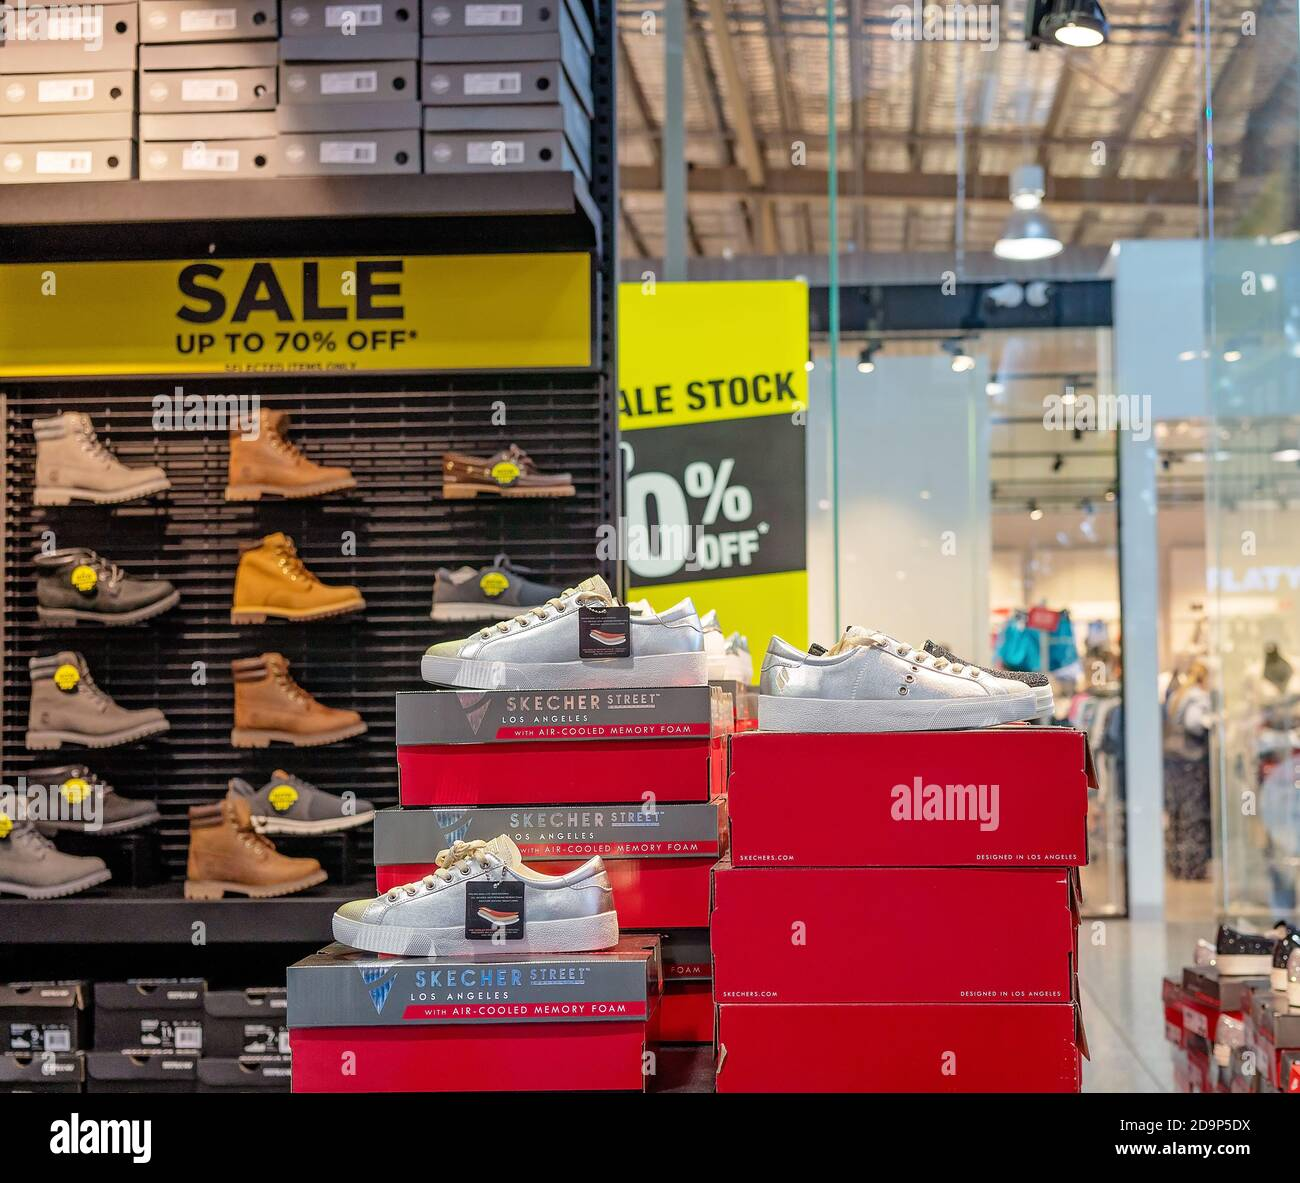 shoe shops at watergardens